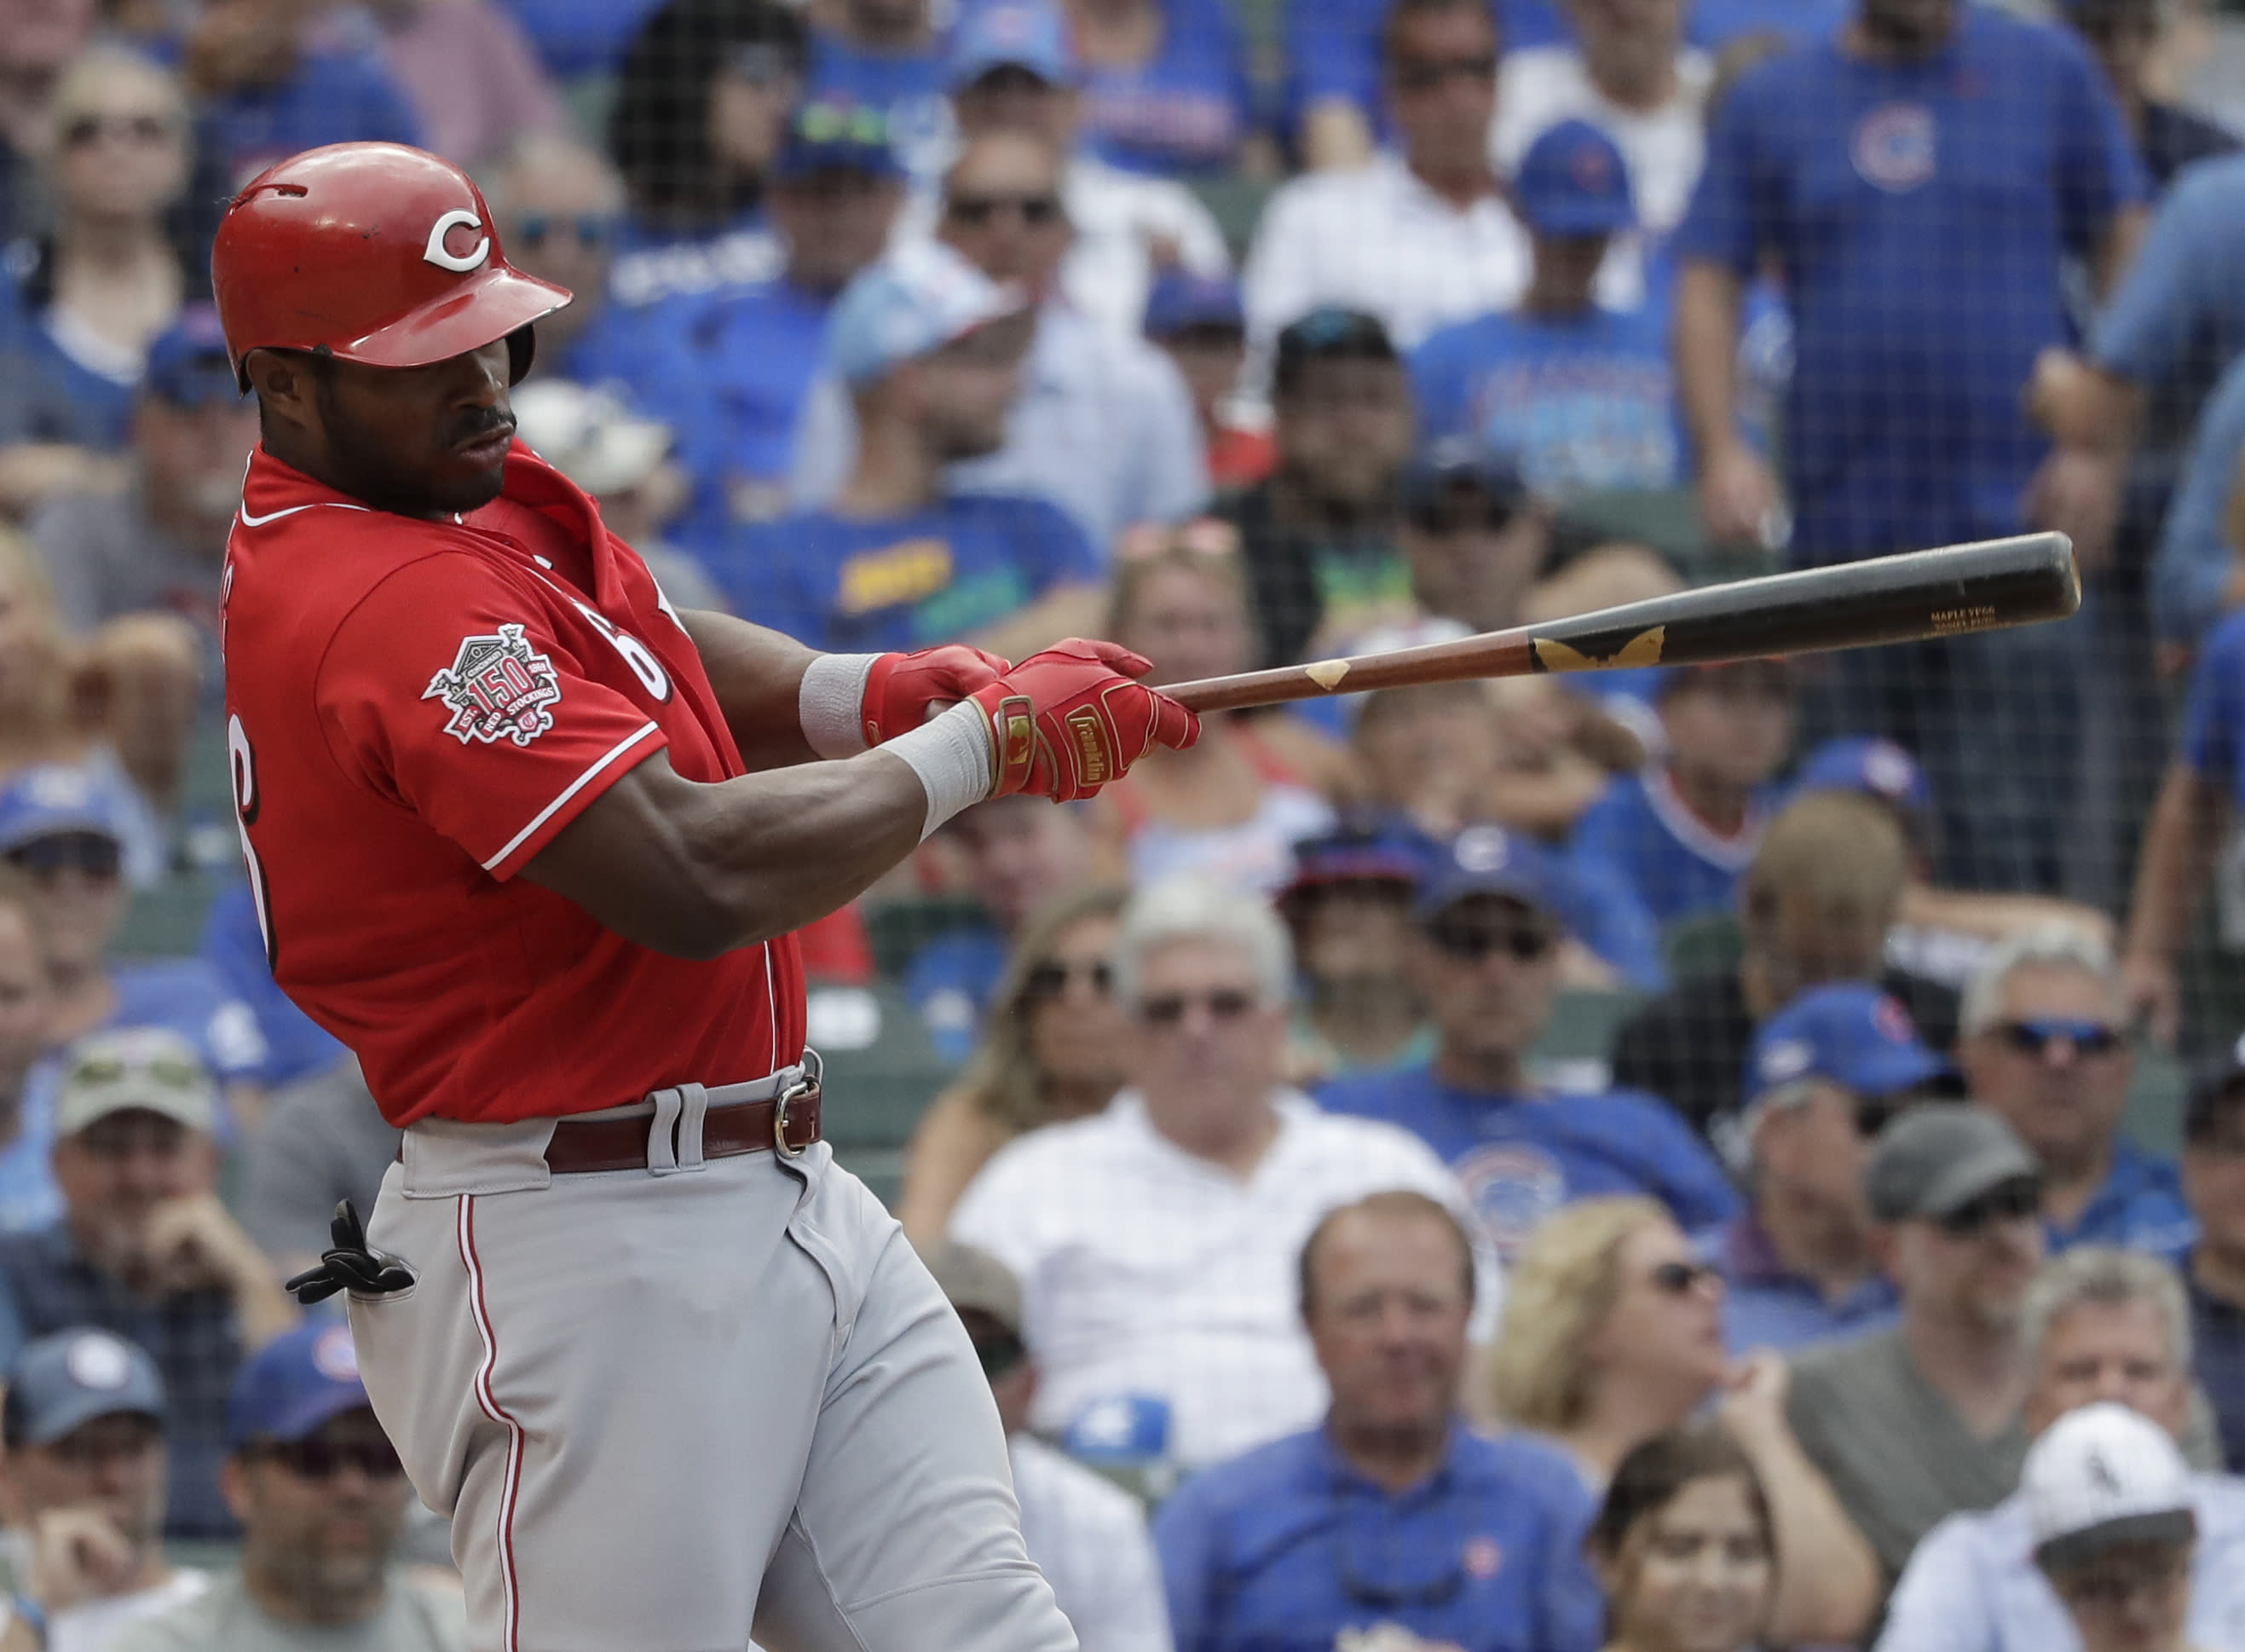 Cincinnati Reds' Yasiel Puig hits a one-run single against the Chicago Cubs during the eighth inning of a baseball game in Chicago, Wednesday, July 17, 2019. (AP Photo/Nam Y. Huh)